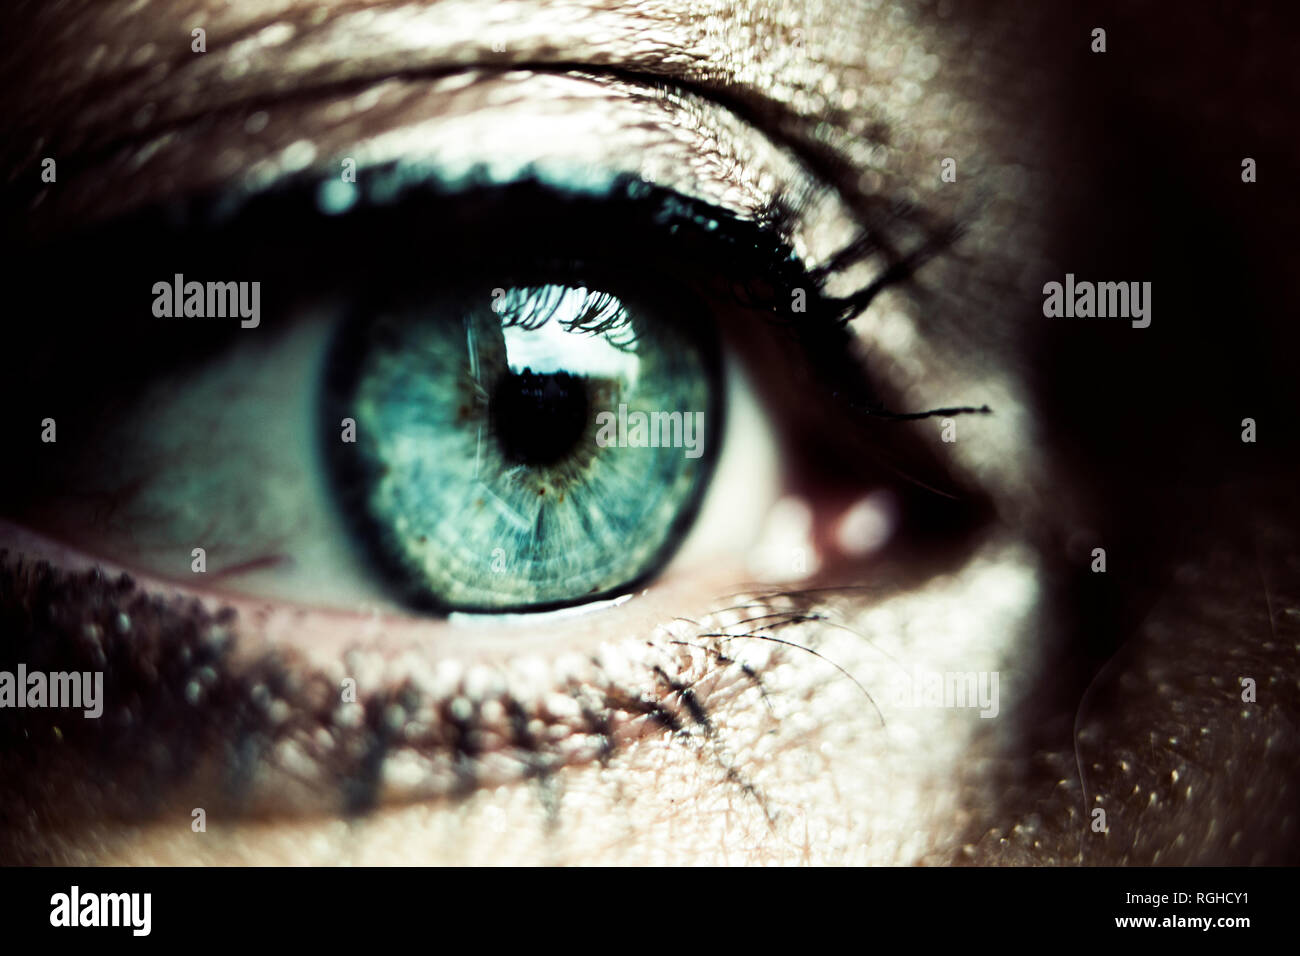 Green eye of made-up woman, close-up - Stock Image